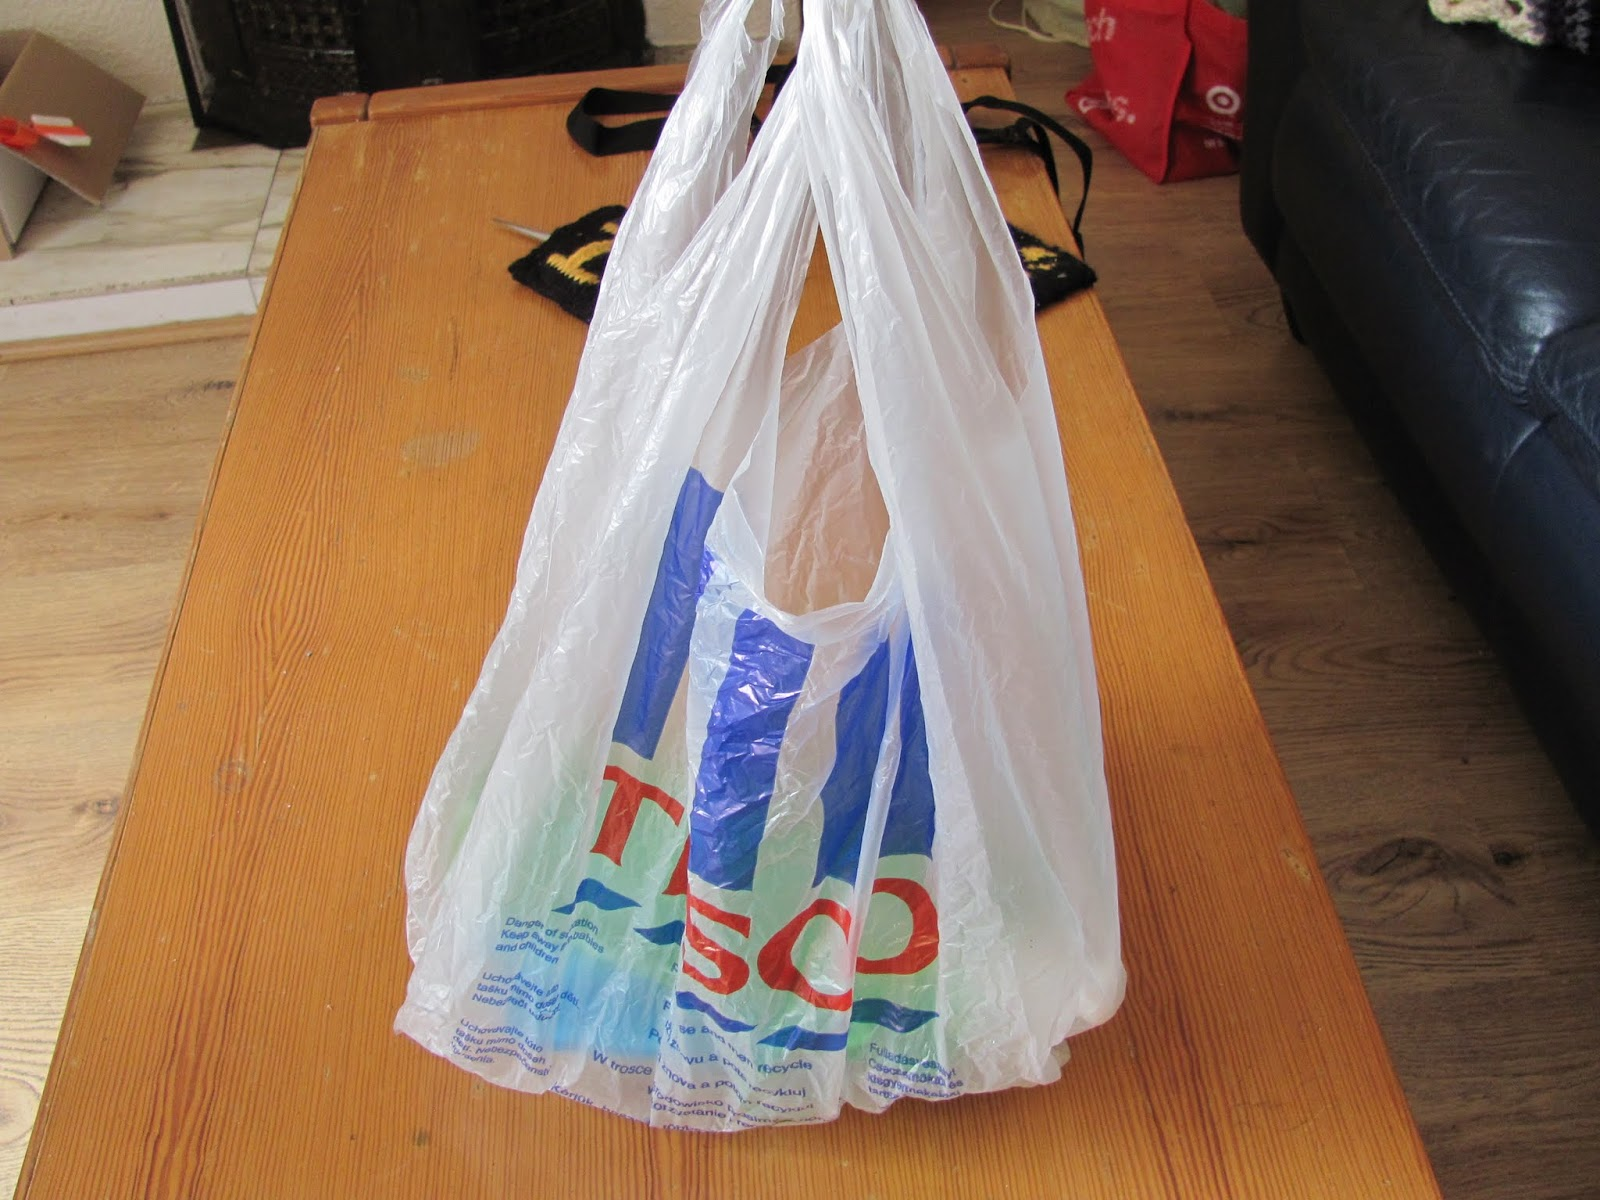 A plastic Tesco shopping bag